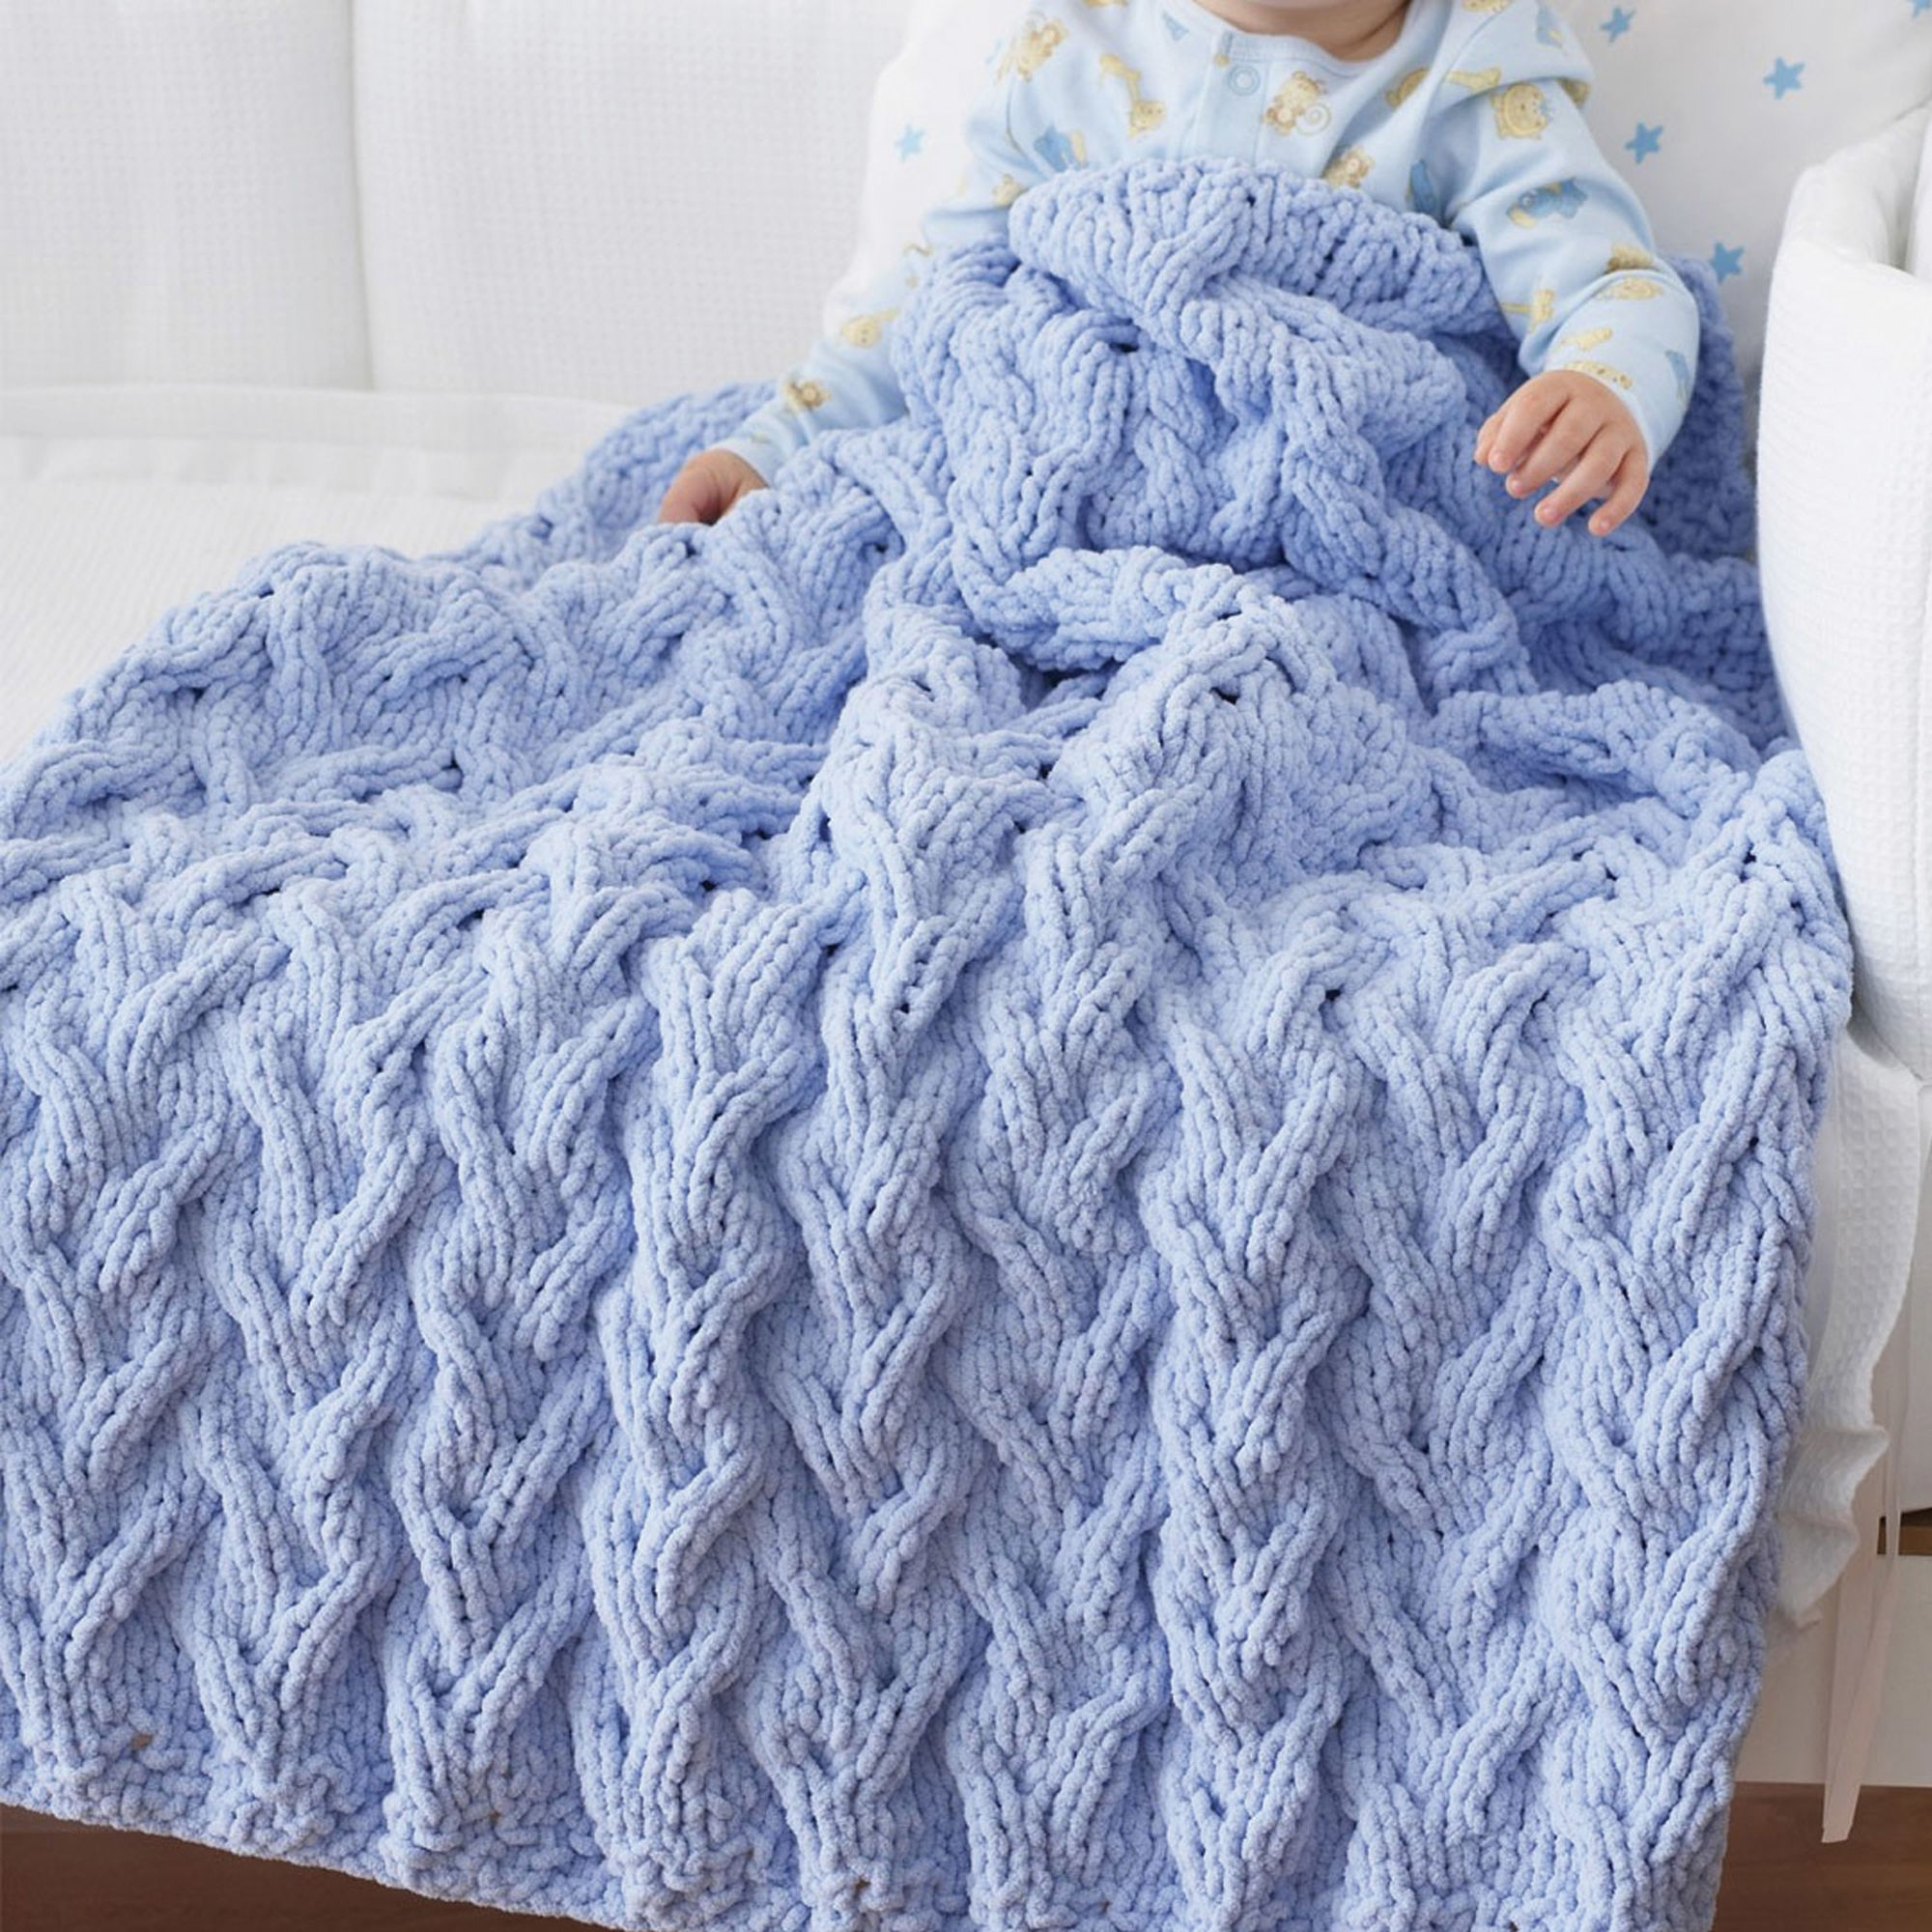 Lovely Cabled Baby Blanket :: Free Knitting Pattern